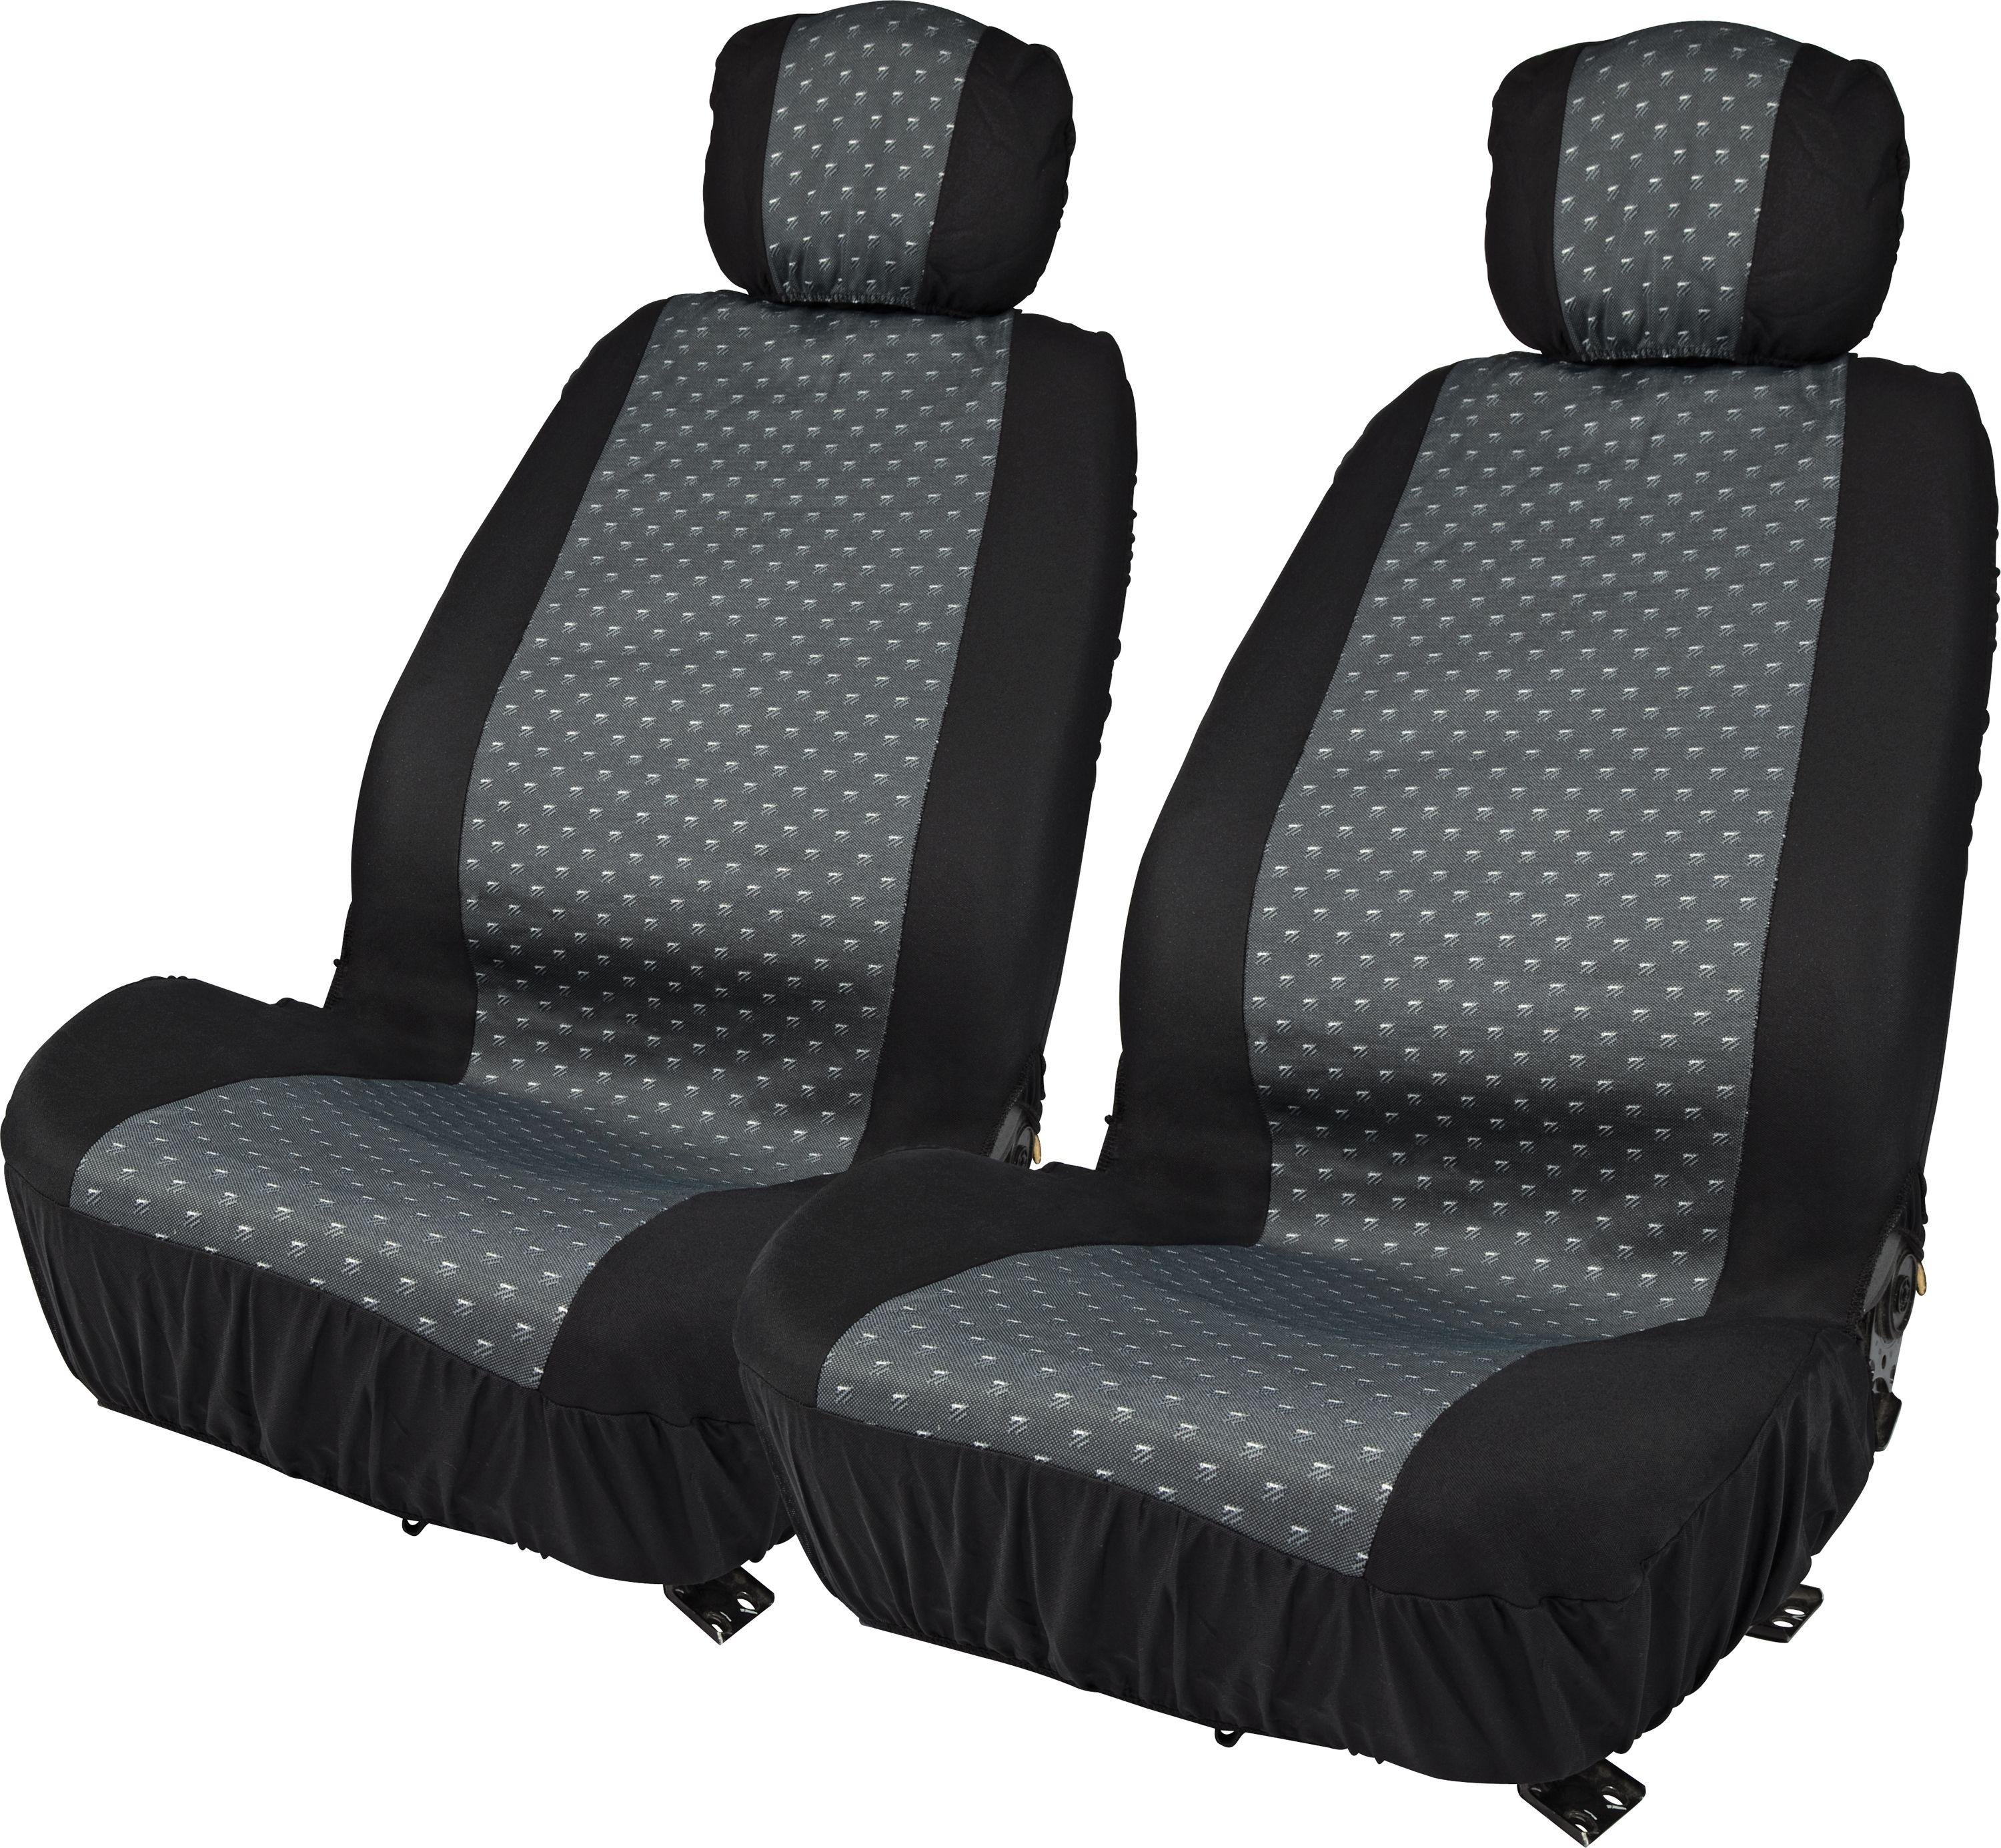 Simple Value Front Car Seat & Headrest Covers - Set of 2